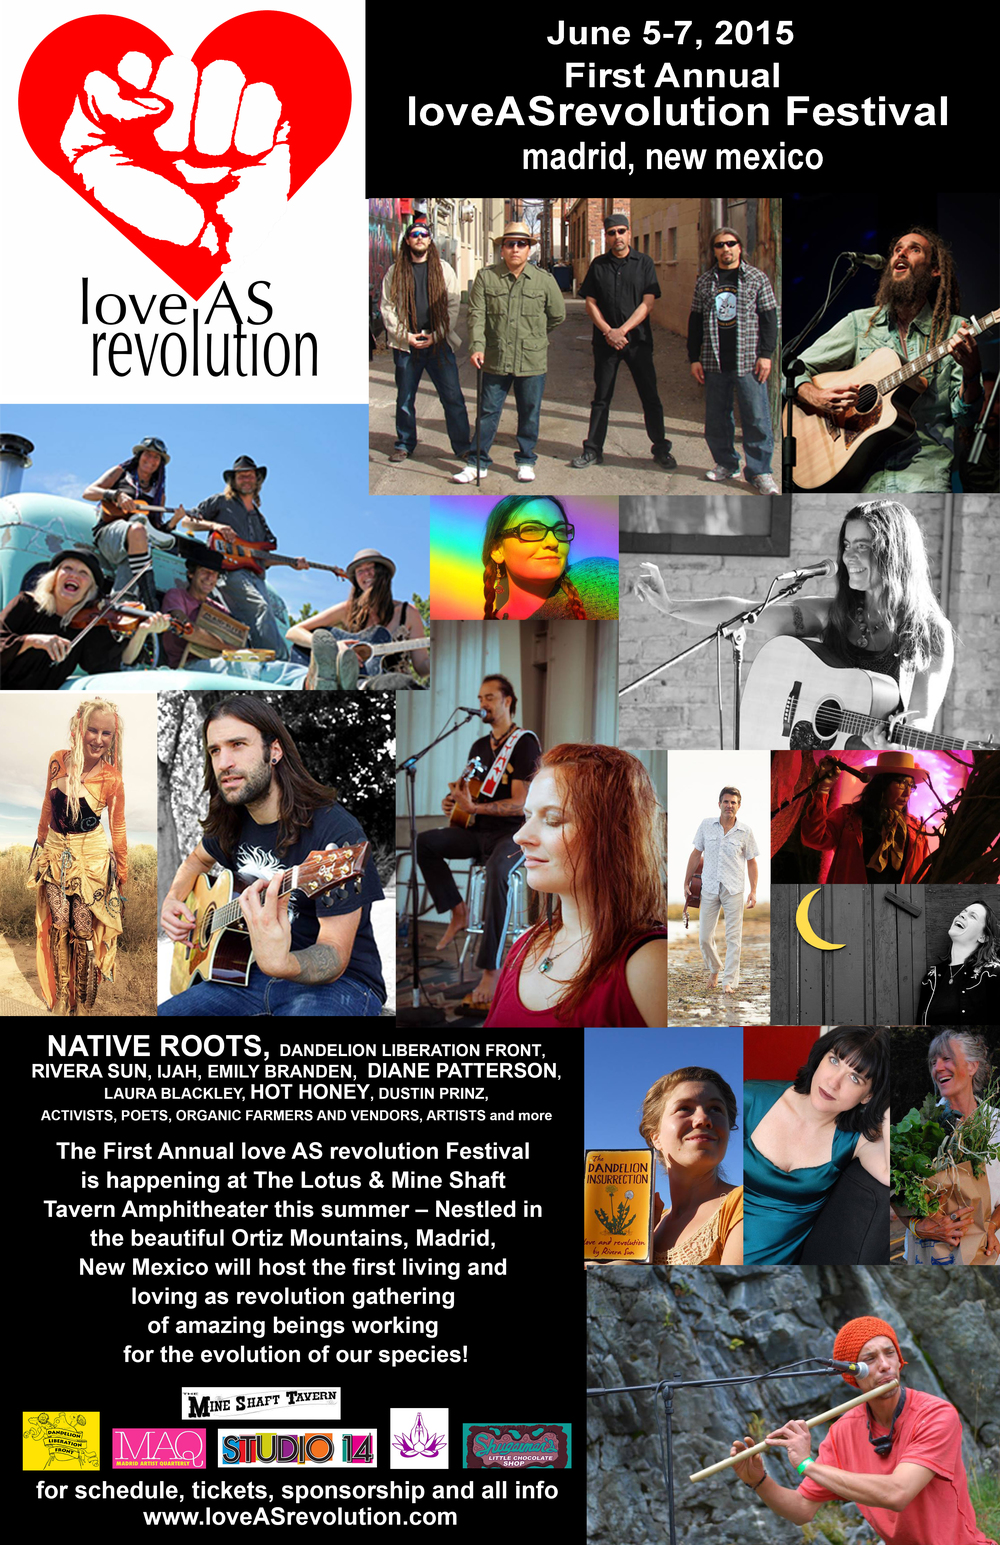 loveASrevolution Festival 2015